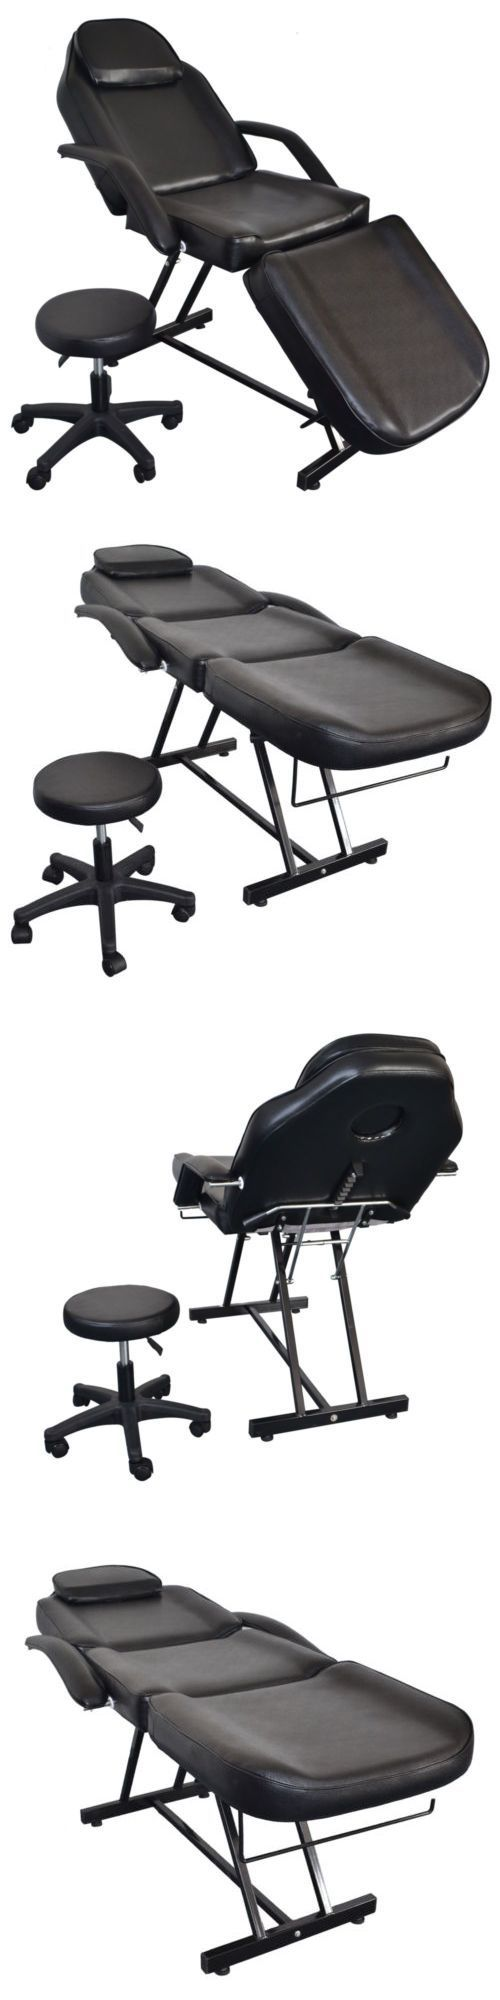 Massage Tables and Chairs: Portable Tattoo Parlor Spa Salon Facial Bed Beauty Massage Table Chair Black BUY IT NOW ONLY: $149.99 #MassageTablesNow